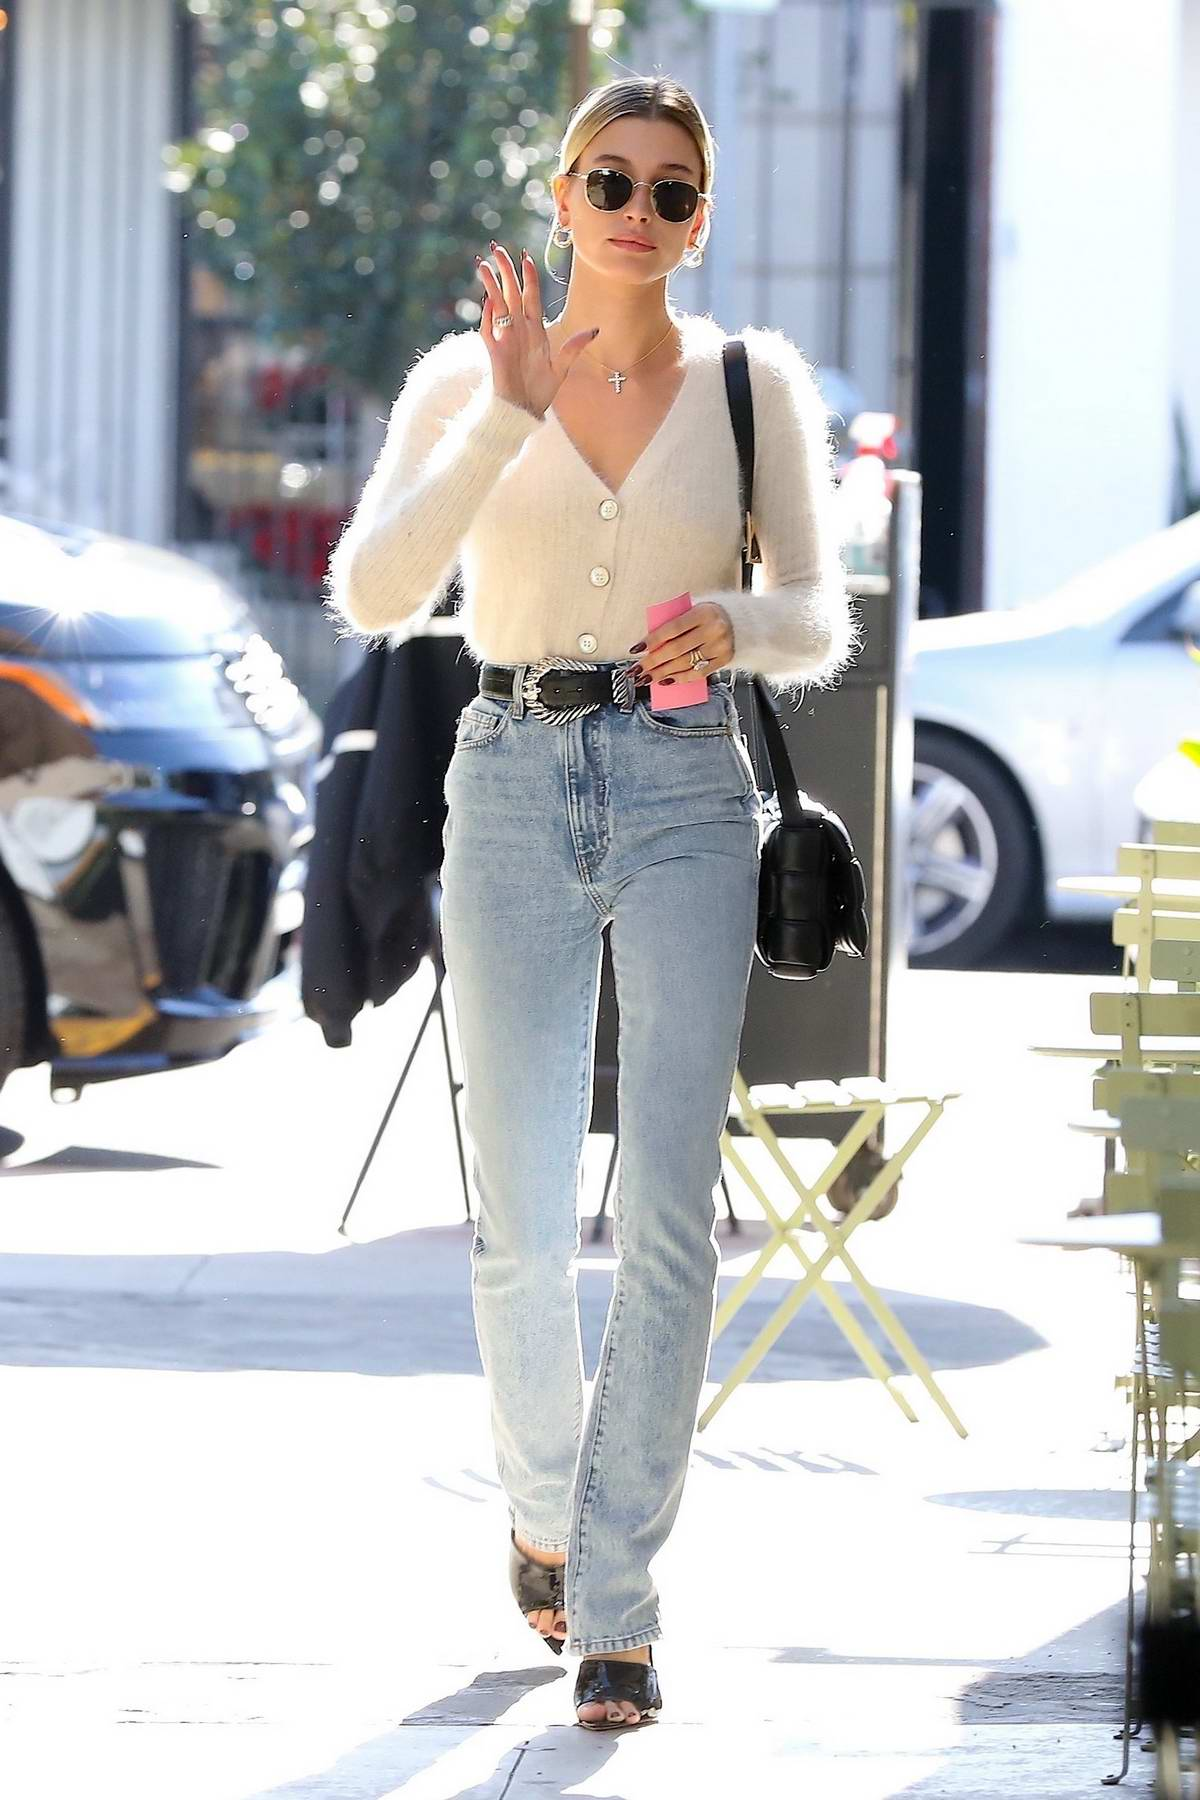 Hailey Bieber looks stylish in a white cardigan as she visits Nine Zero One salon in Los Angeles